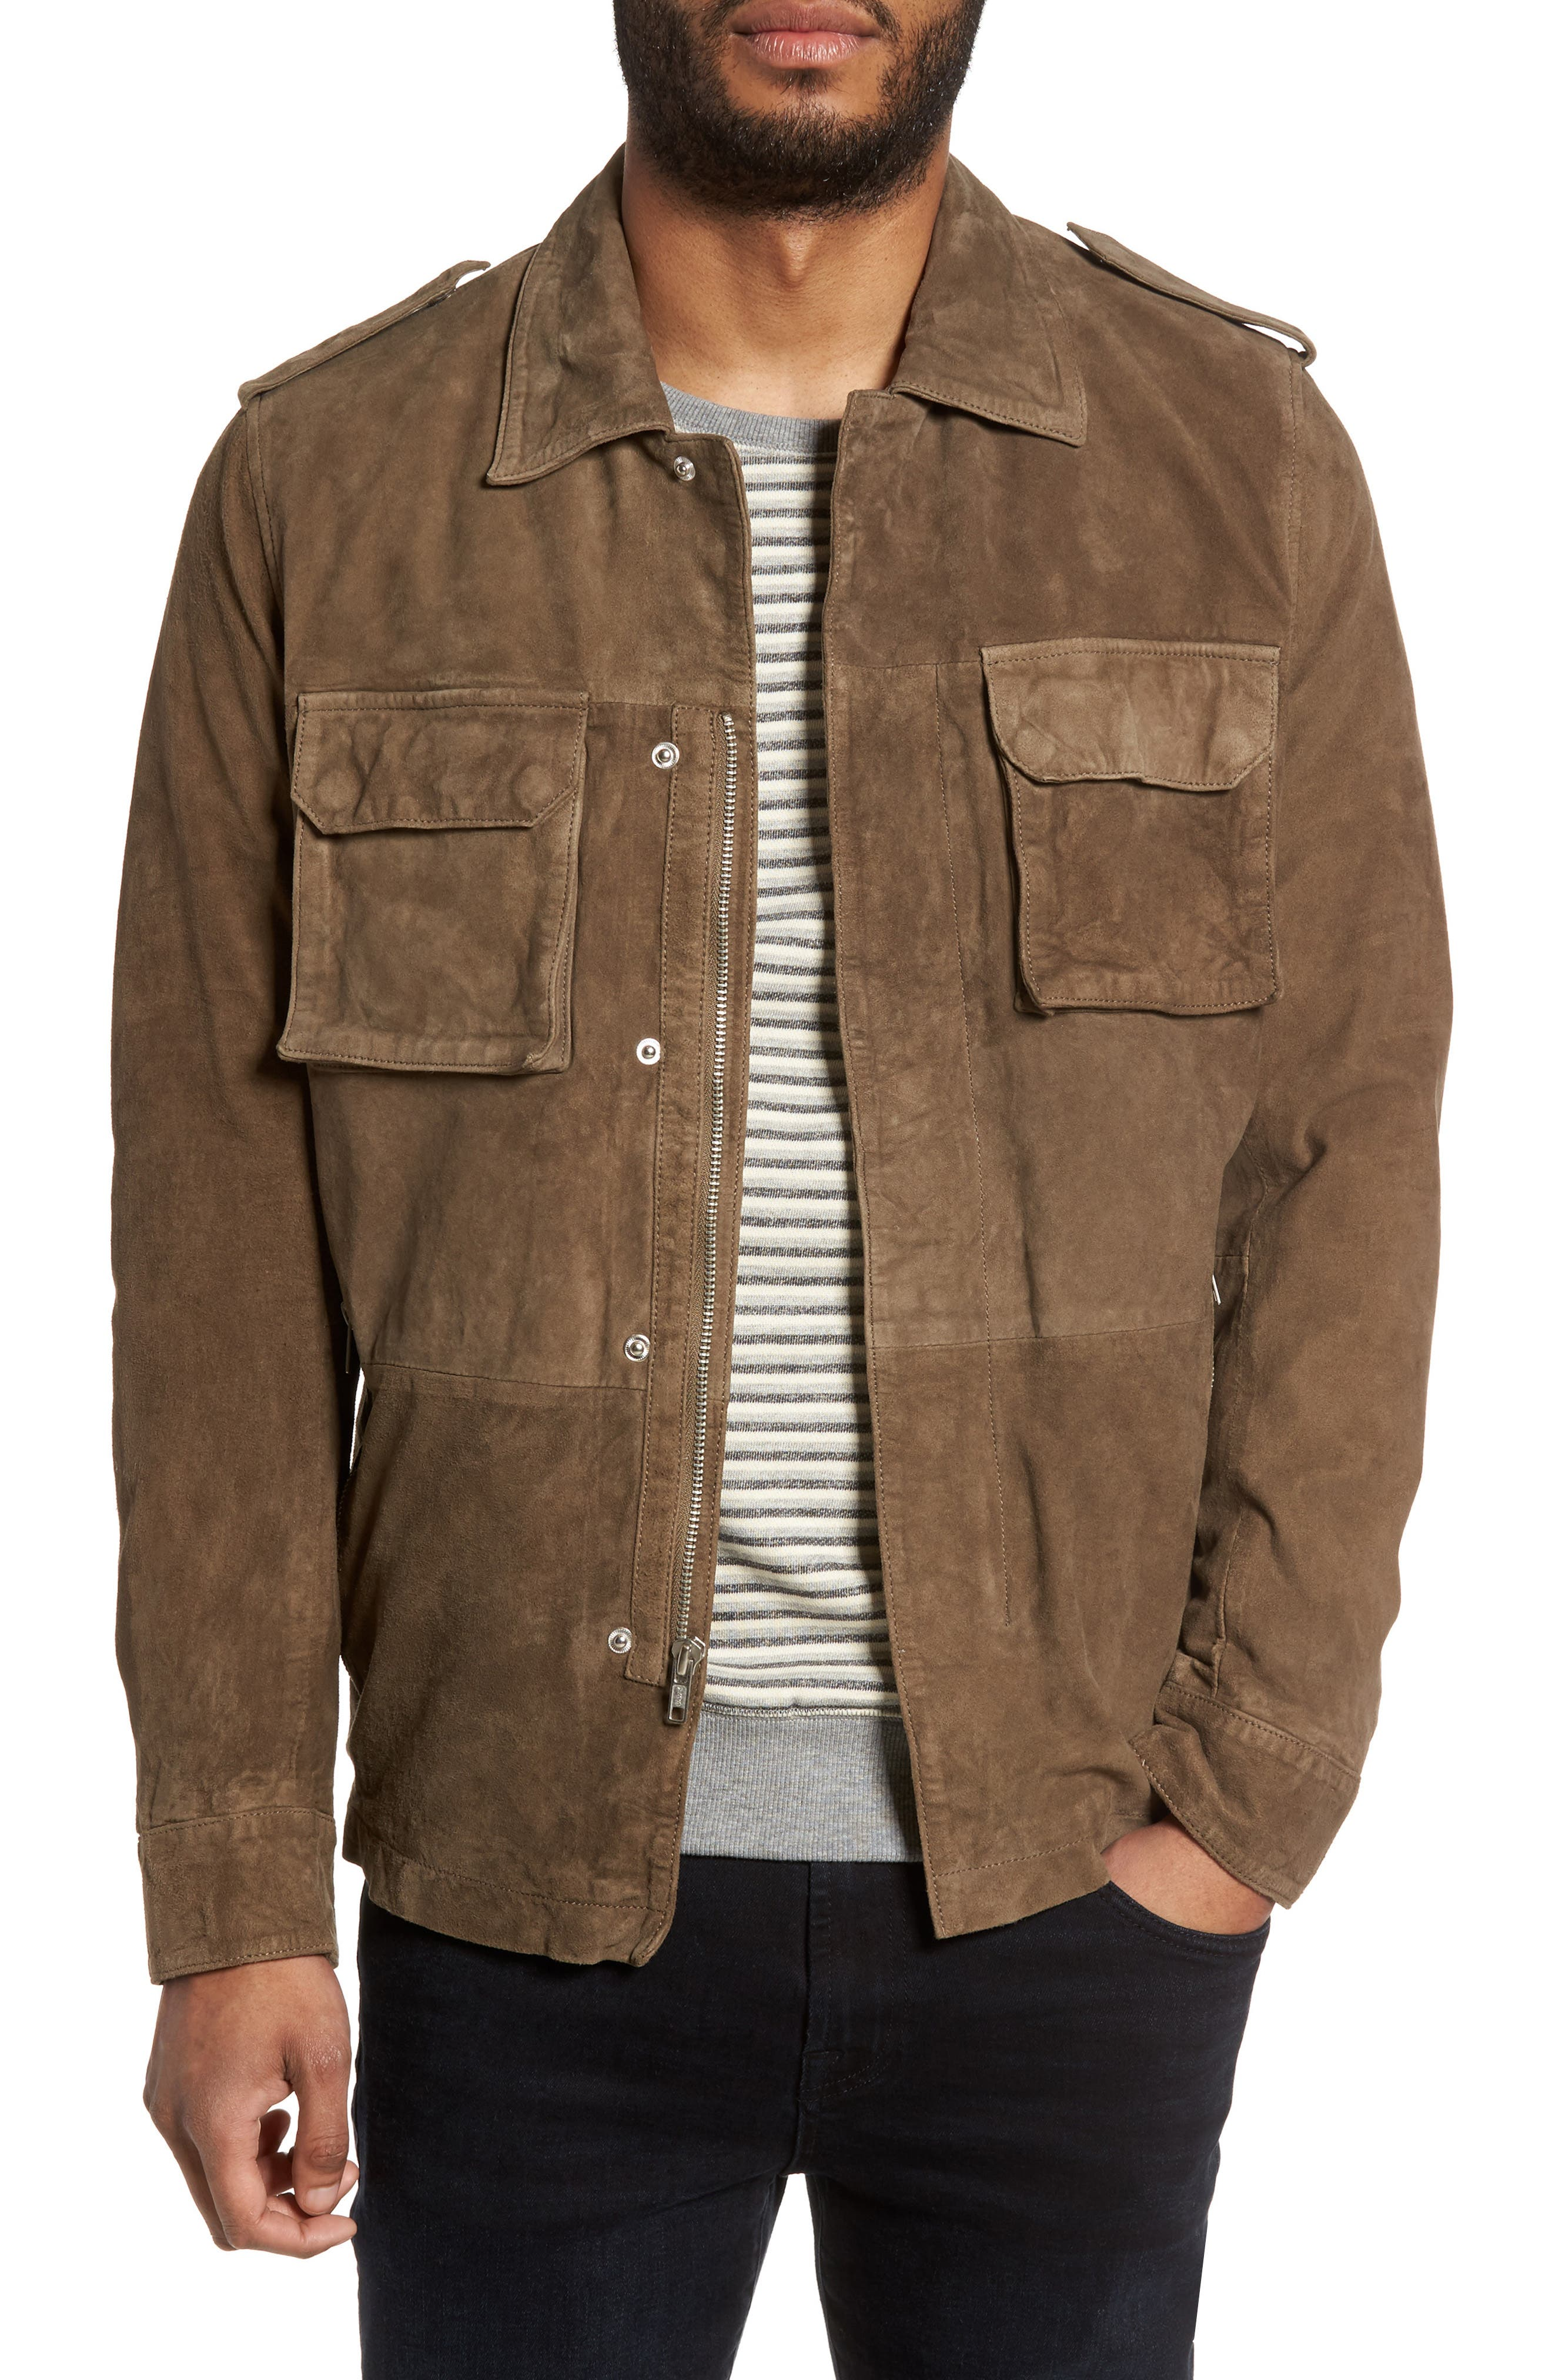 LAMARQUE Washed Suede Military Shirt Jacket